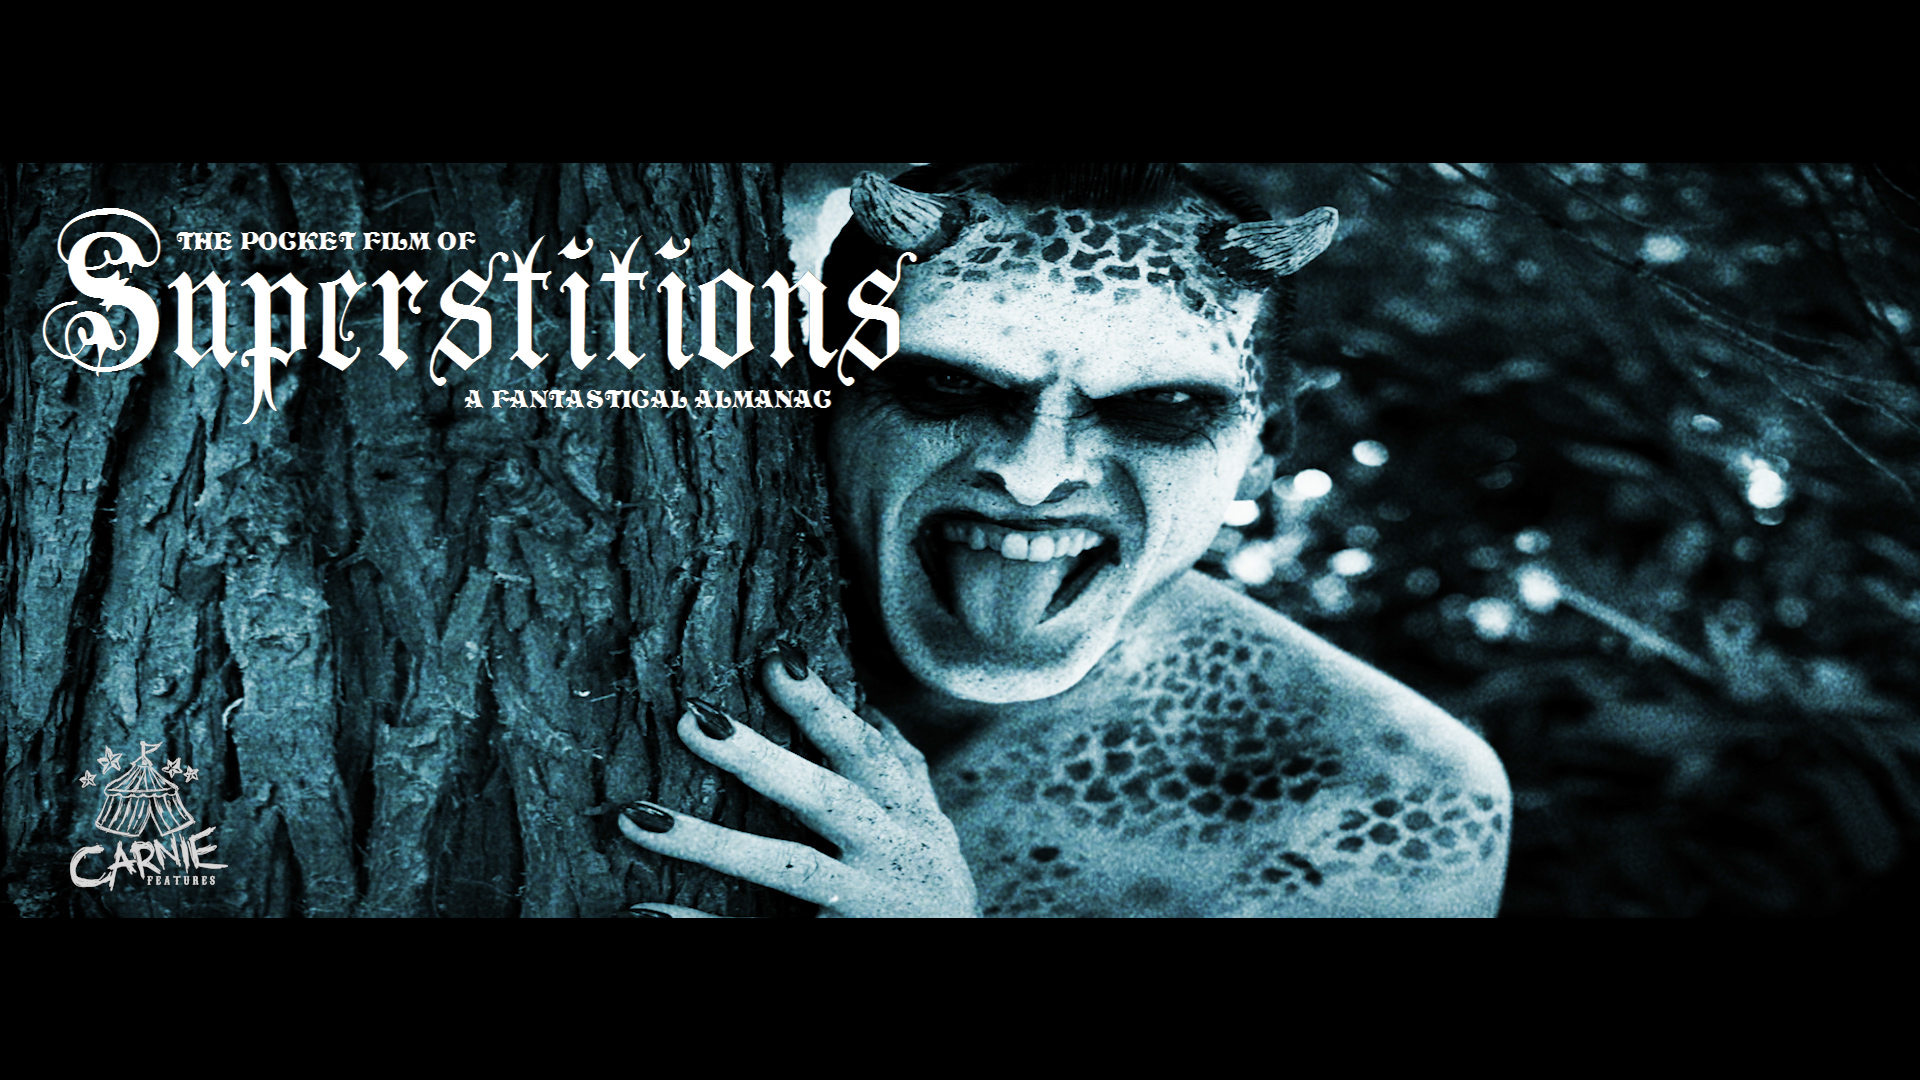 TRAILER DROPS FOR 'THE POCKET FILM OF SUPERSTITIONS'